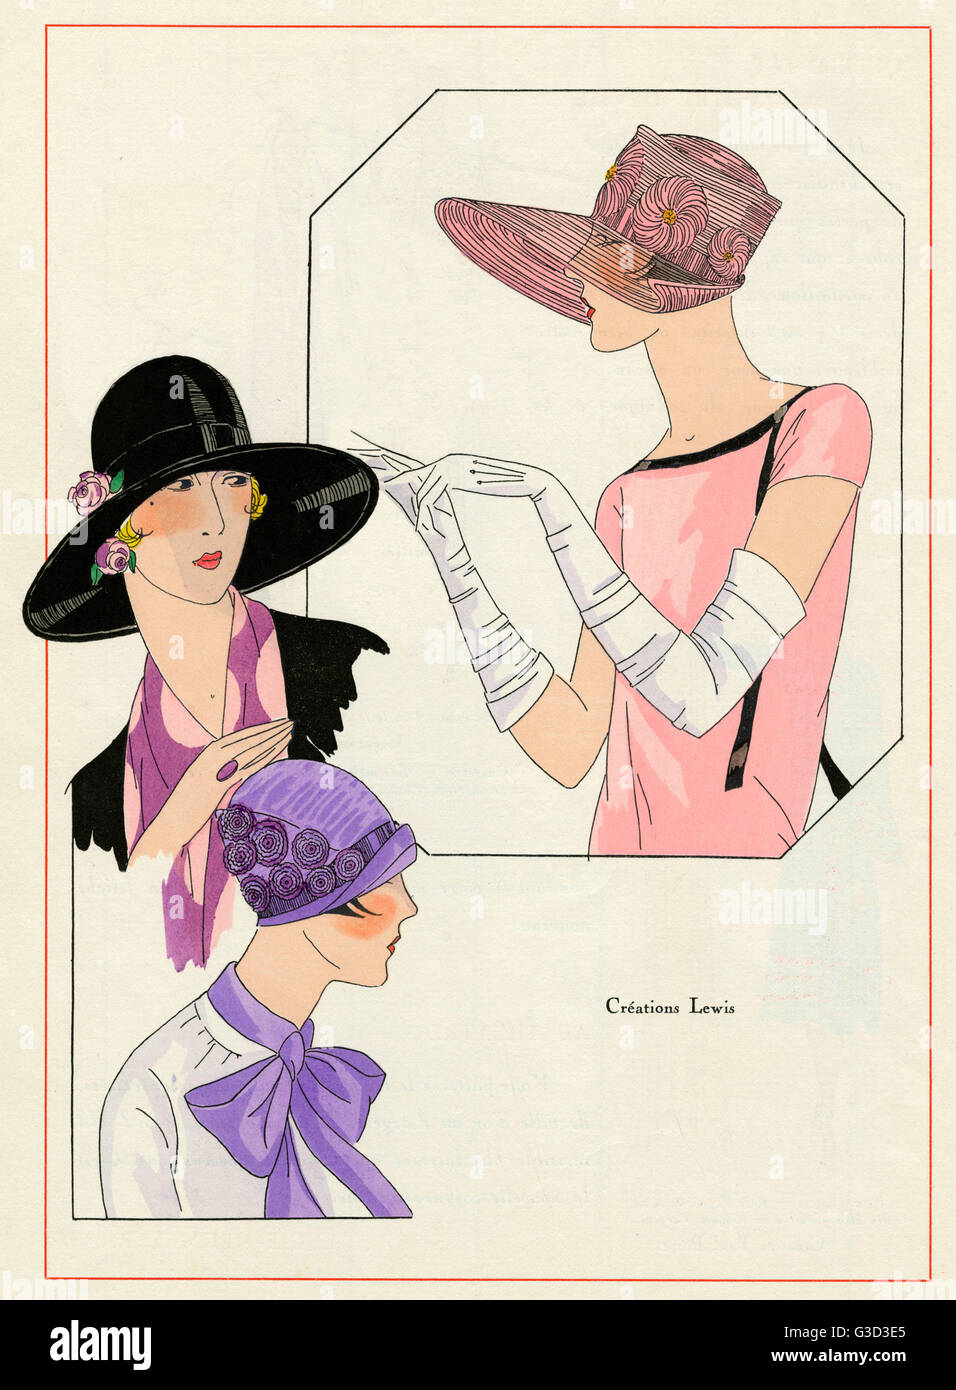 Creations by Lewis, three styes of hats for summer 1926.     Date: 1926 - Stock Image